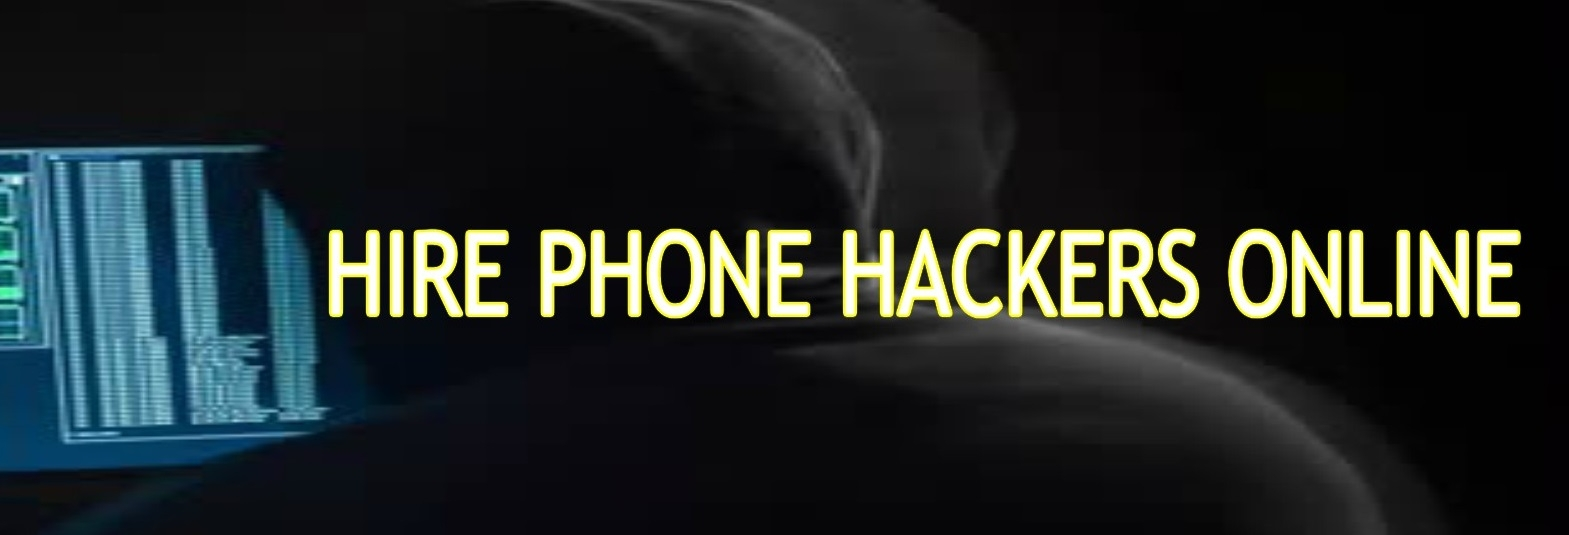 H (@hirephonehackers) Cover Image